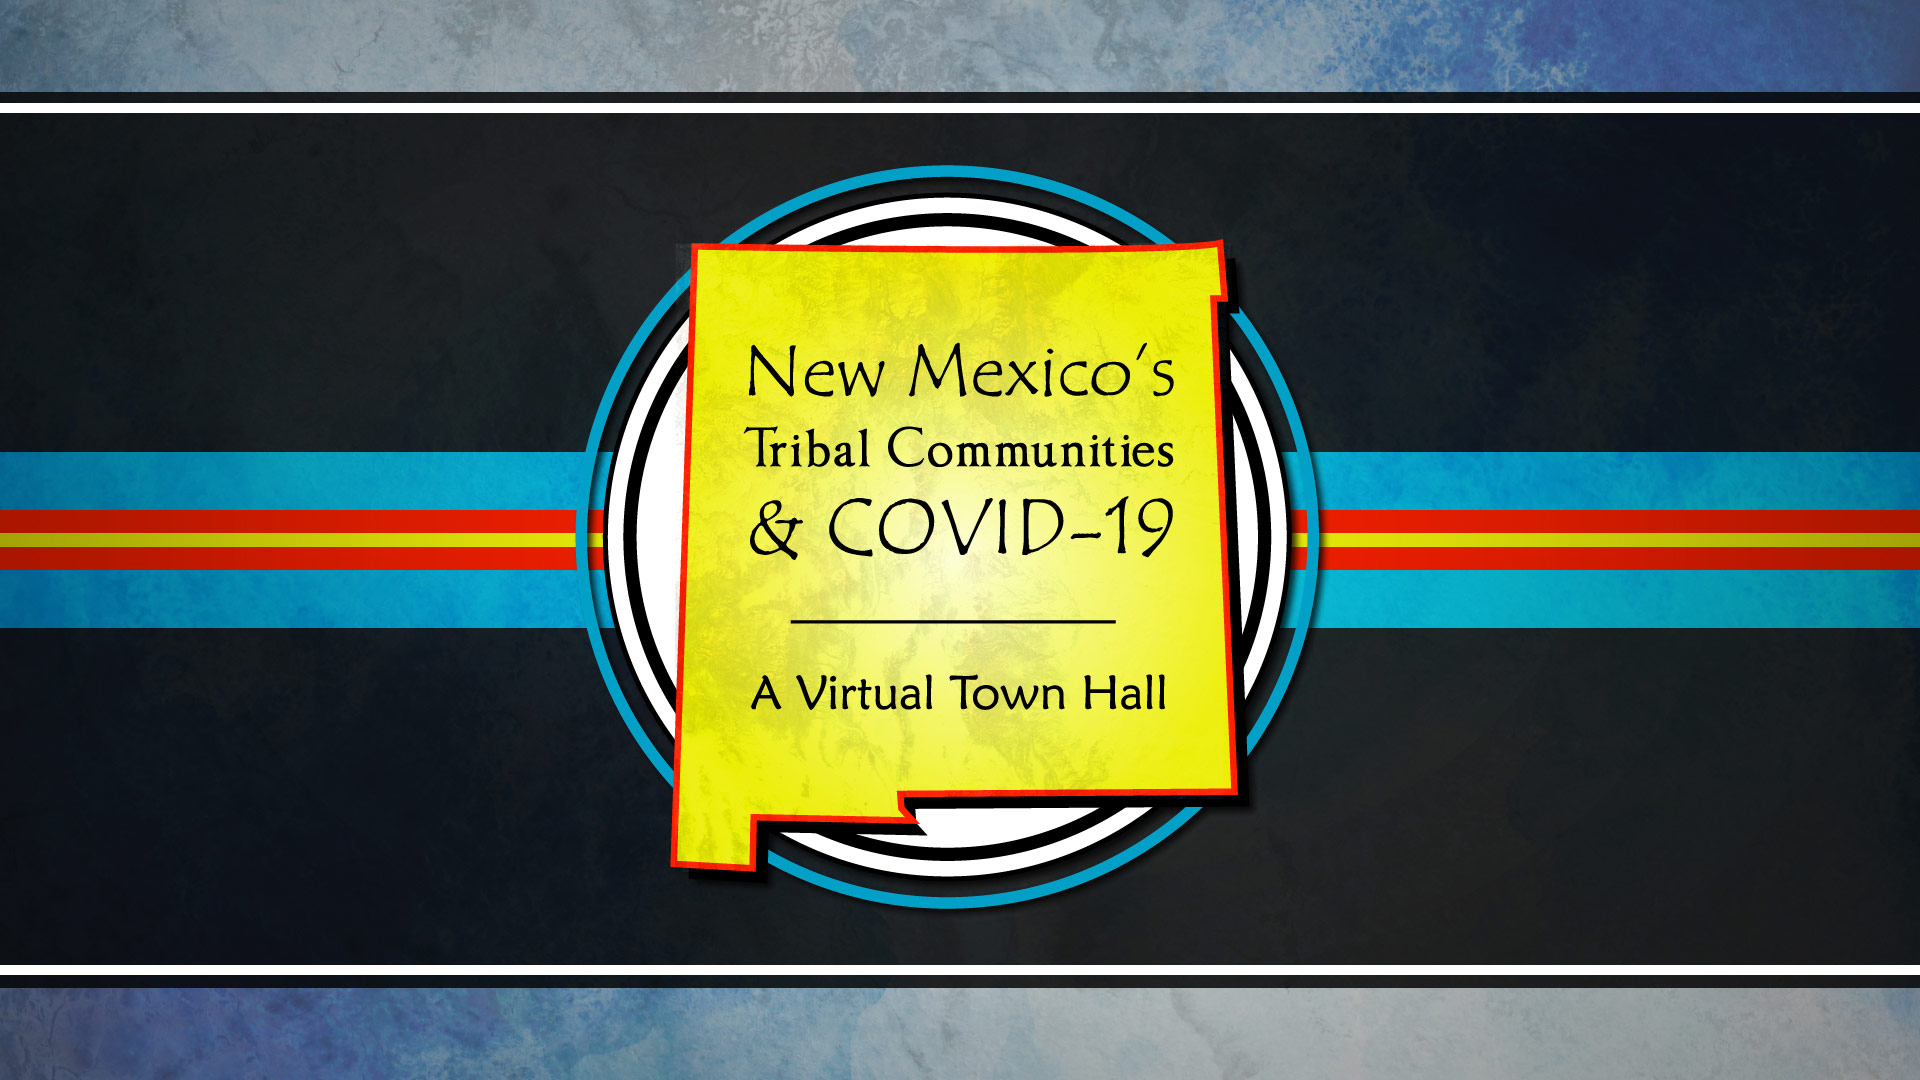 New Mexico's Tribal Communities and COVID-19: A Virtual Town Hall